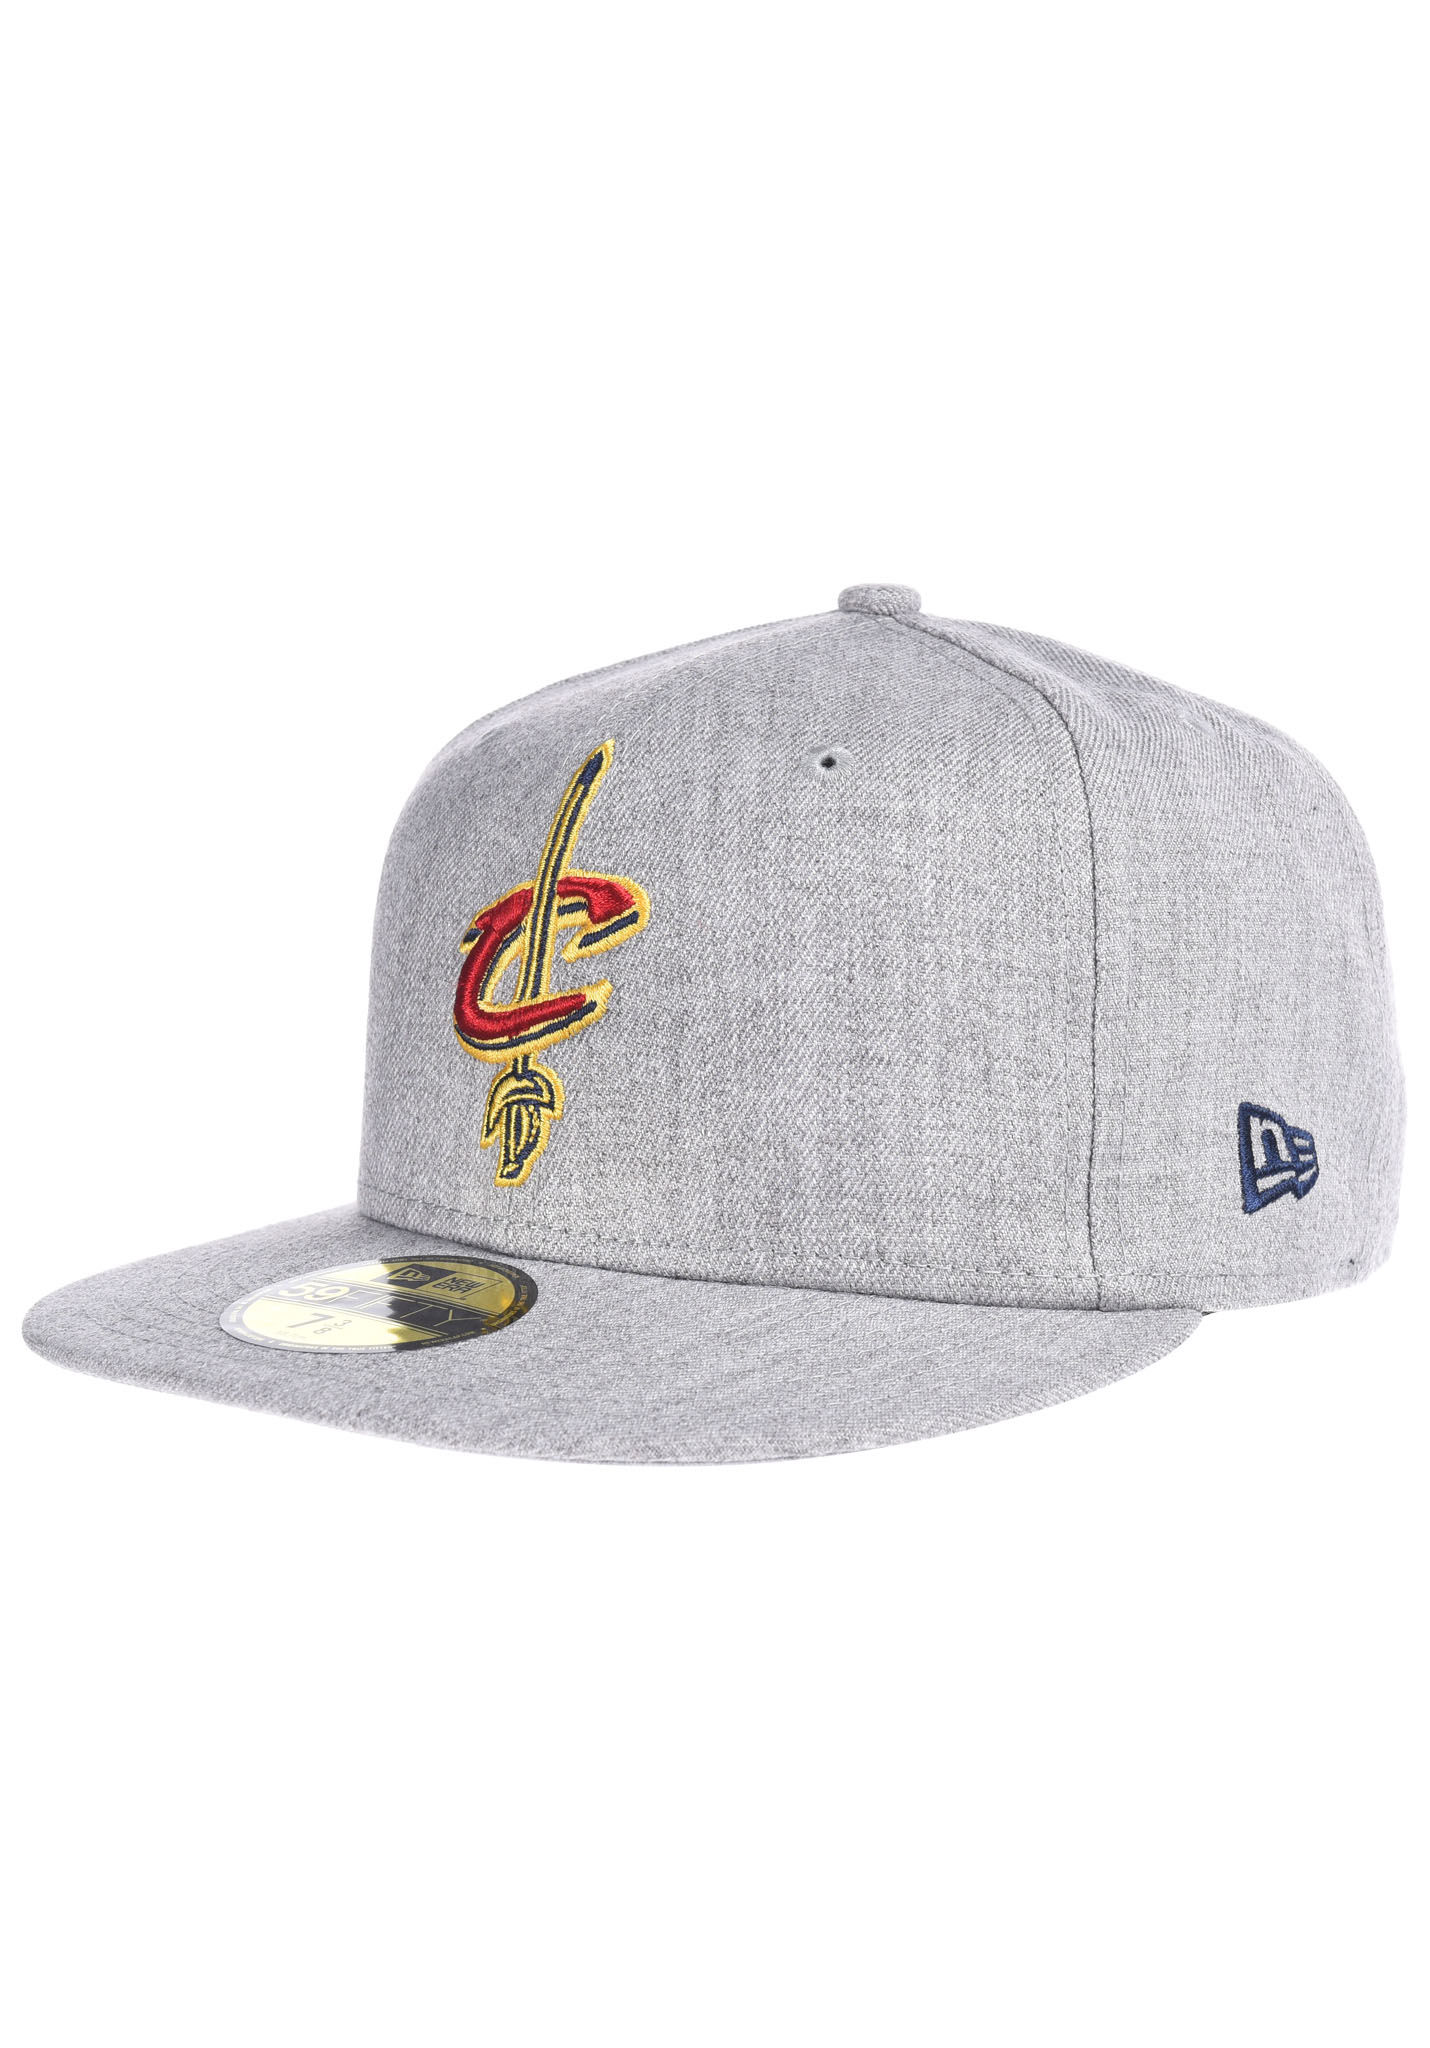 new arrival 5364b 40a10 NEW Era NBA Heather Fitted Cleveland Cavaliers - Fitted Cap - Grey - Planet  Sports